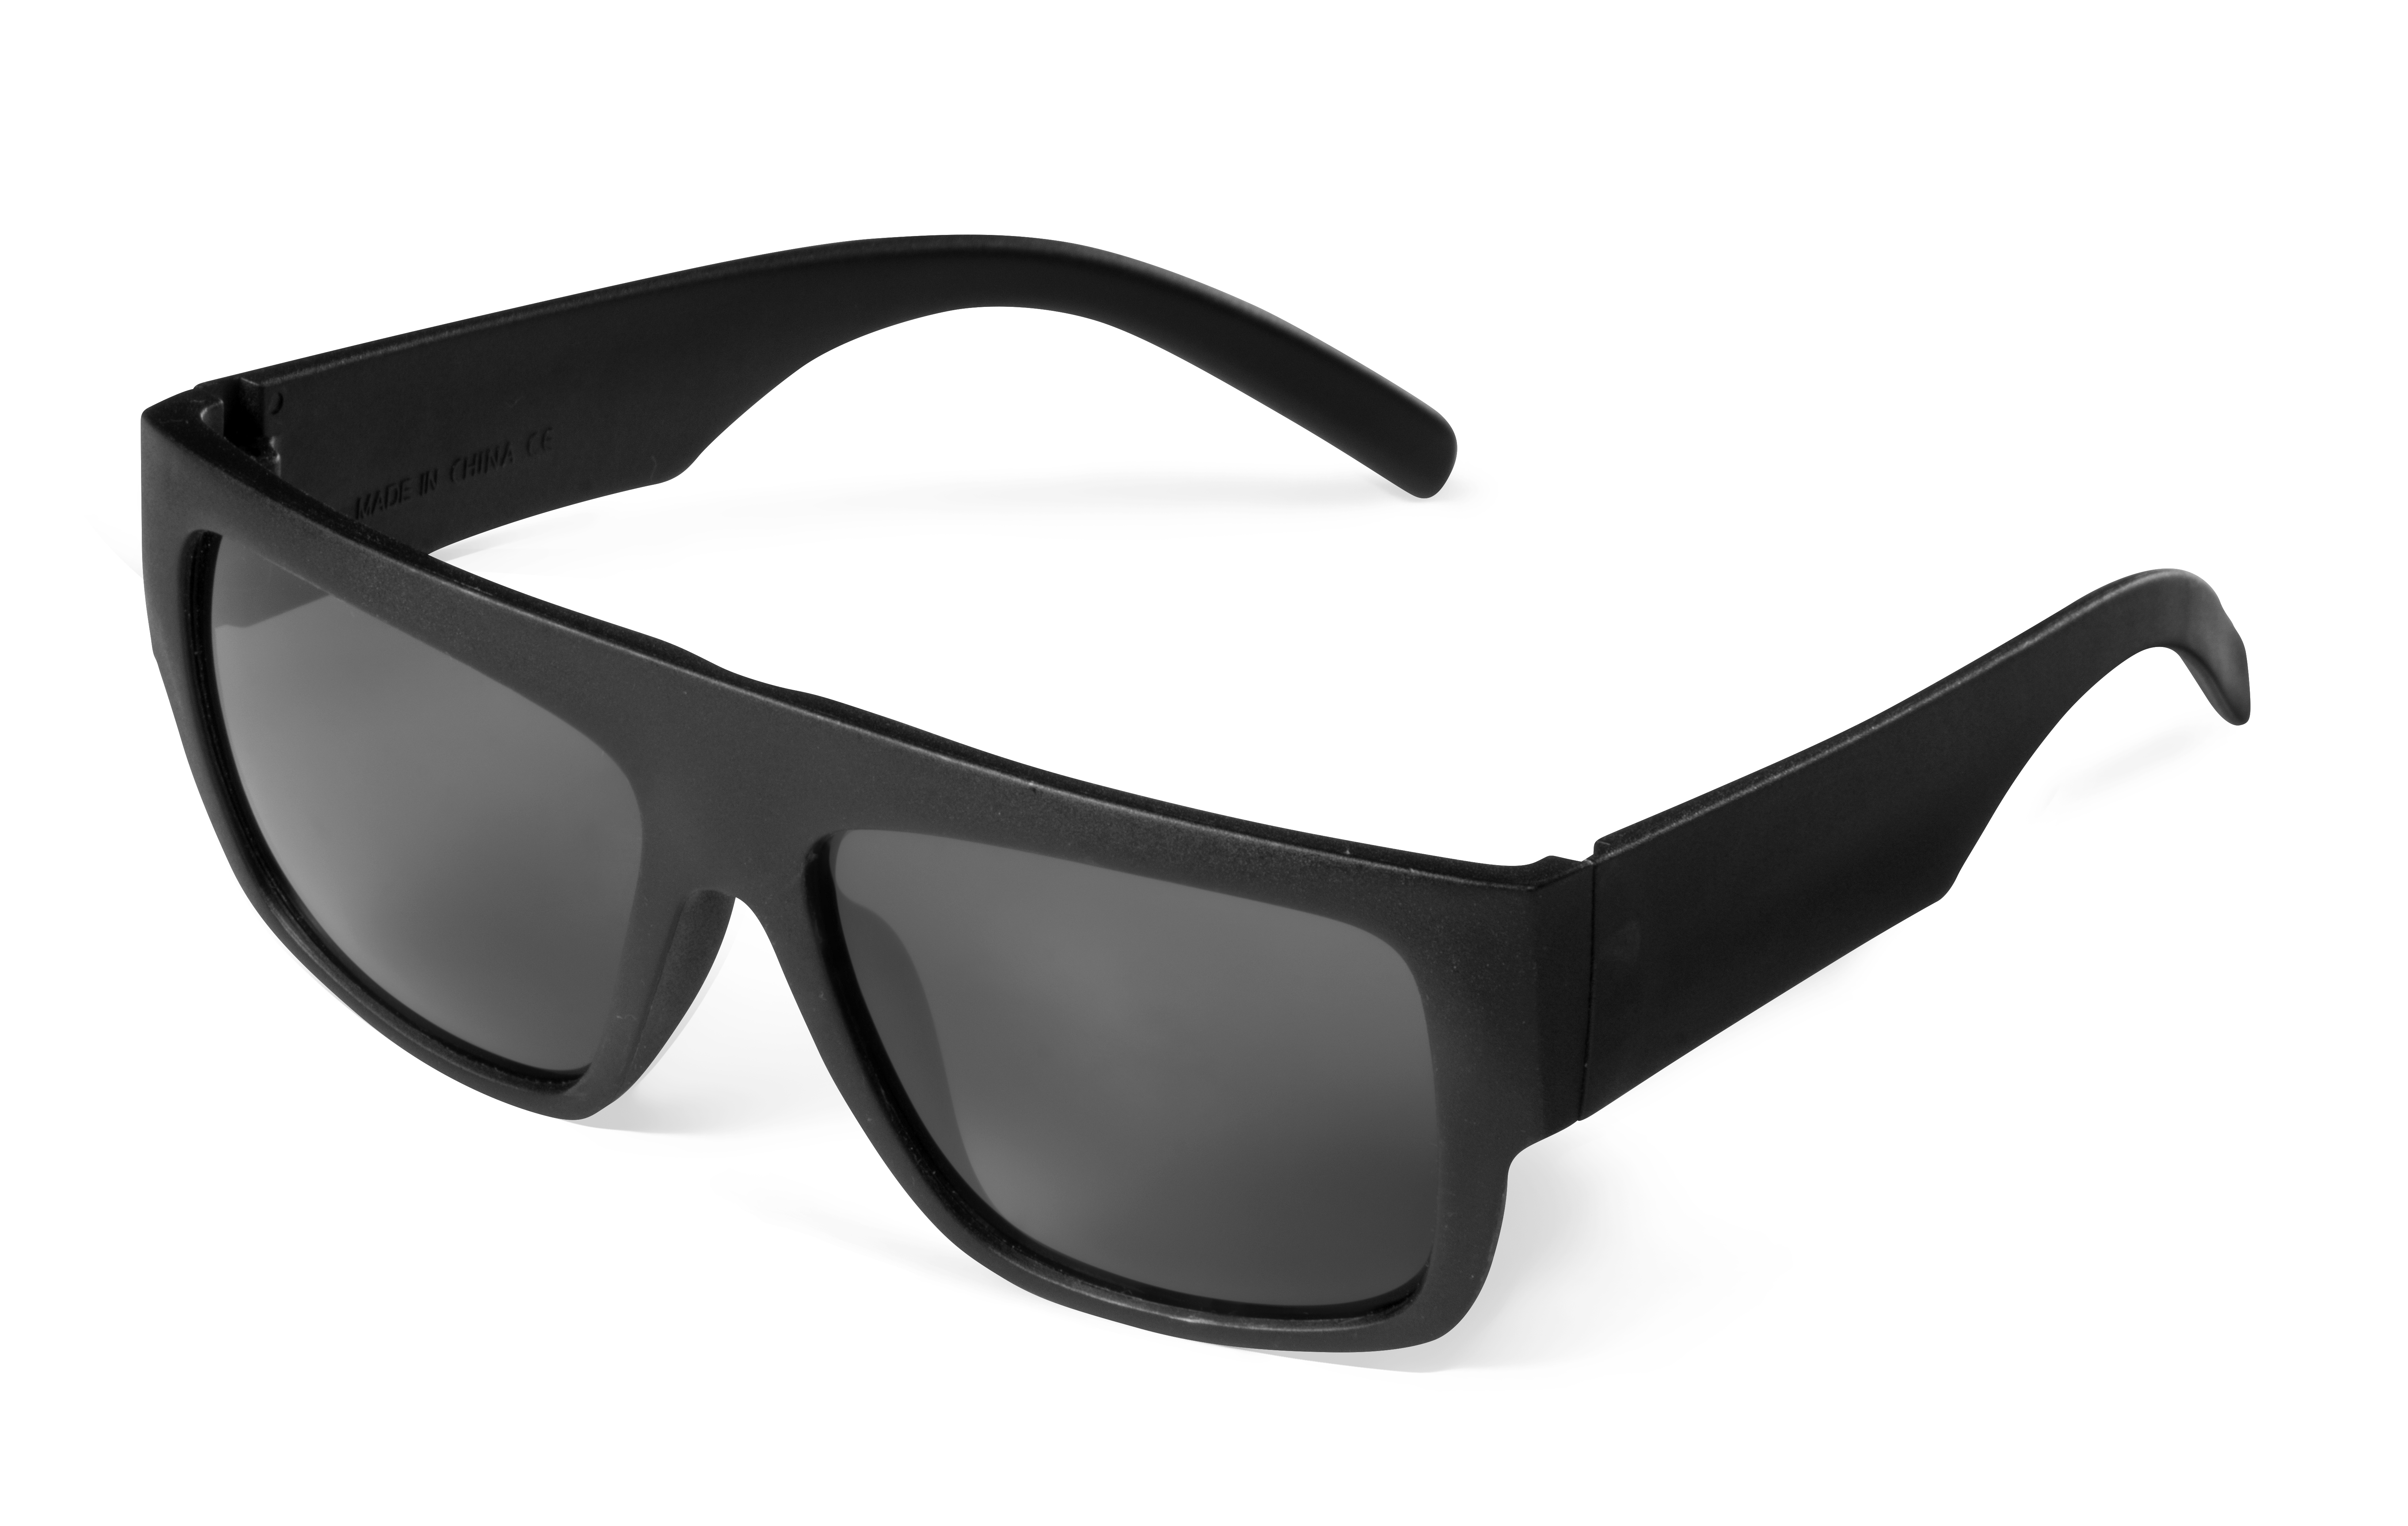 Frenzy Sunglasses - Black Only - GIFT-17155